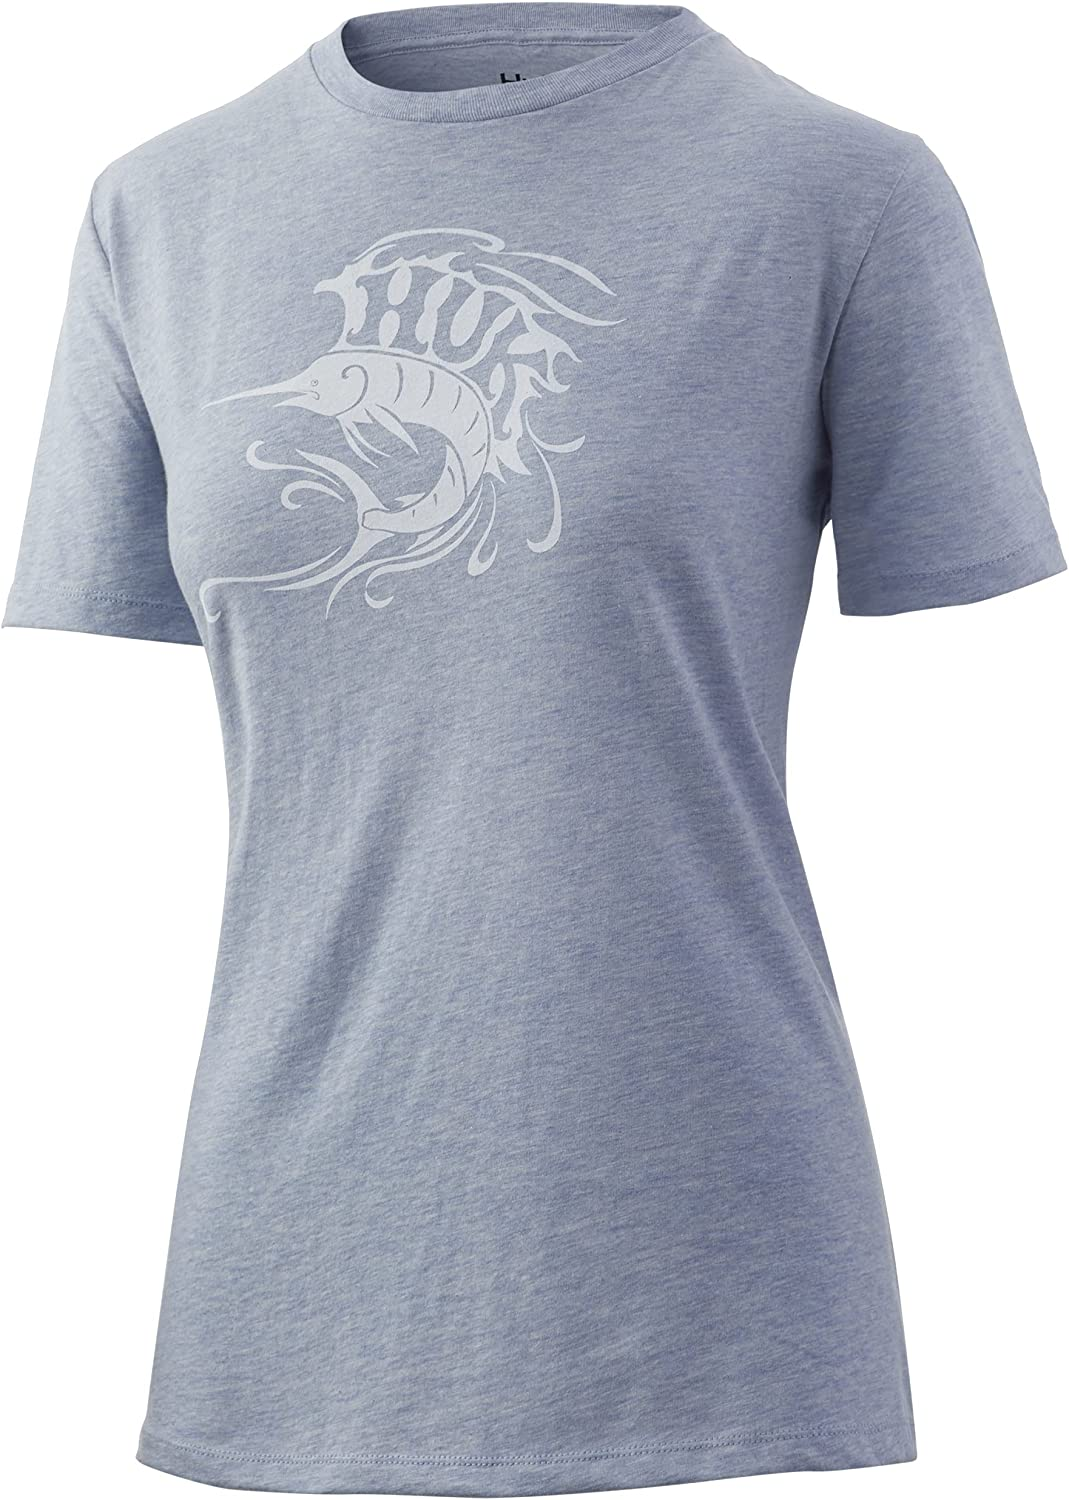 HUK Women's V Neck Tee Ladies At the price of surprise 30+ UPF Protect T-Shirt unisex with Sun